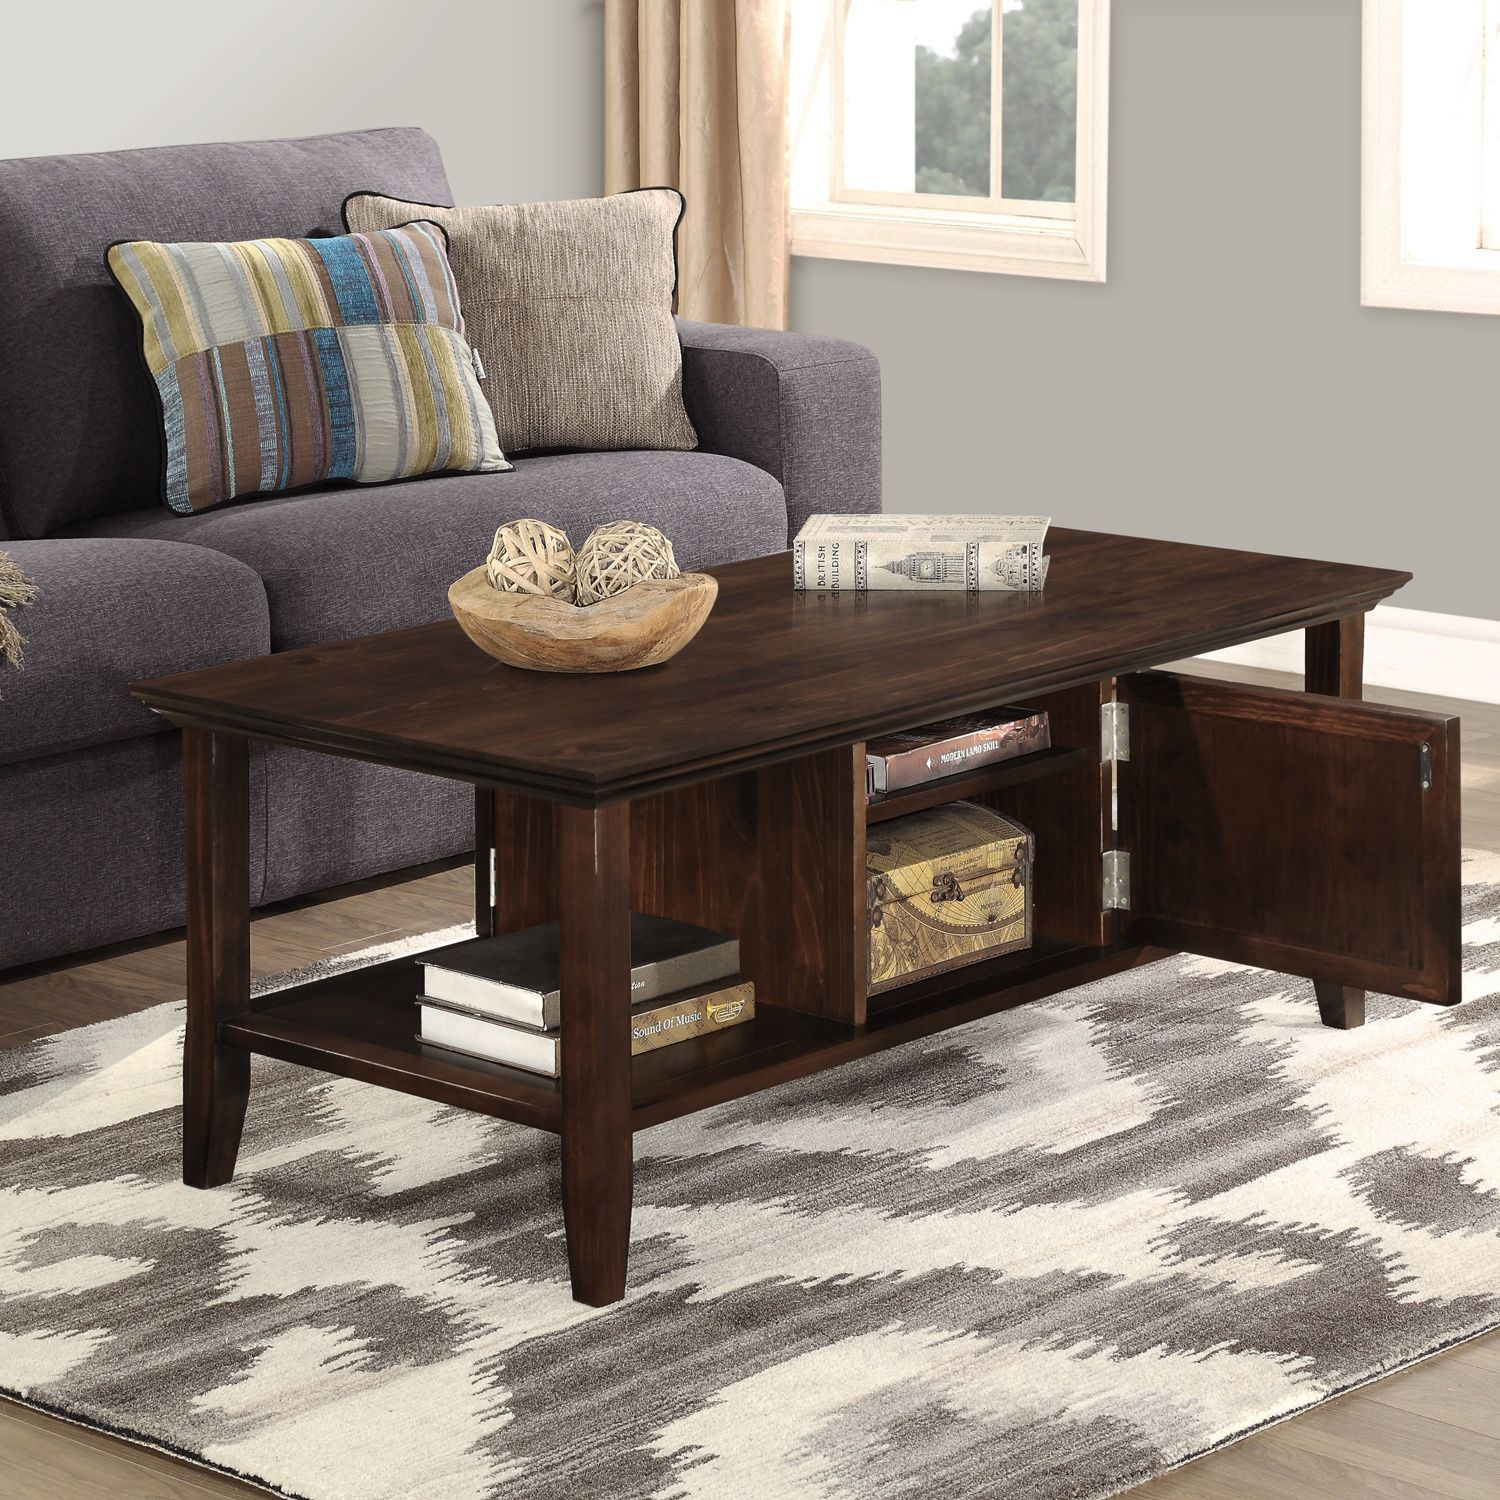 WYNDENHALL Normandy Tobacco Brown Coffee Table - Overstock Shopping - Great Deals on WyndenHall Coffee, Sofa & End Tables